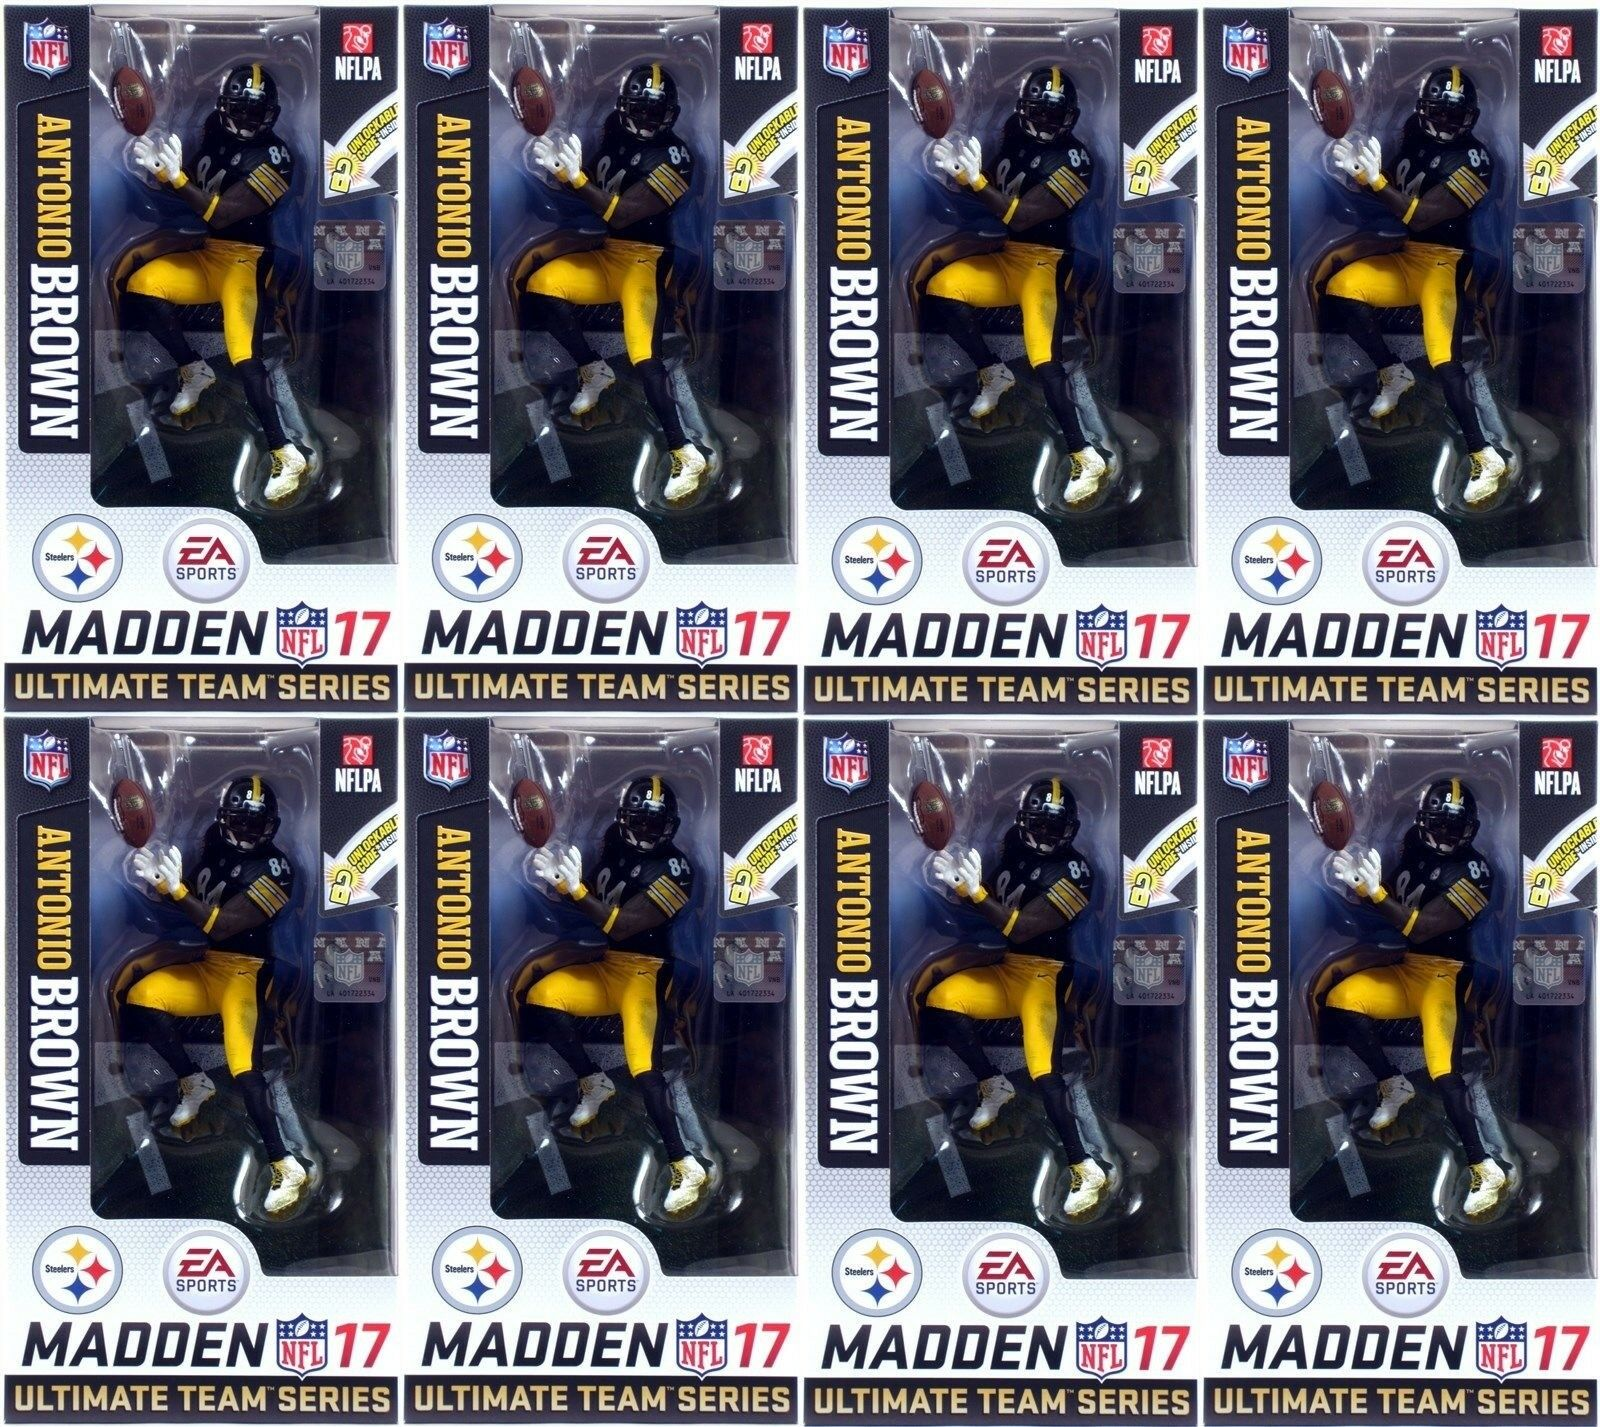 McFarlane EA Sports Madden Madden Madden NFL 17 Ultimate Team Series 3 ANTONIO BROWN LOT OF 8 0098be